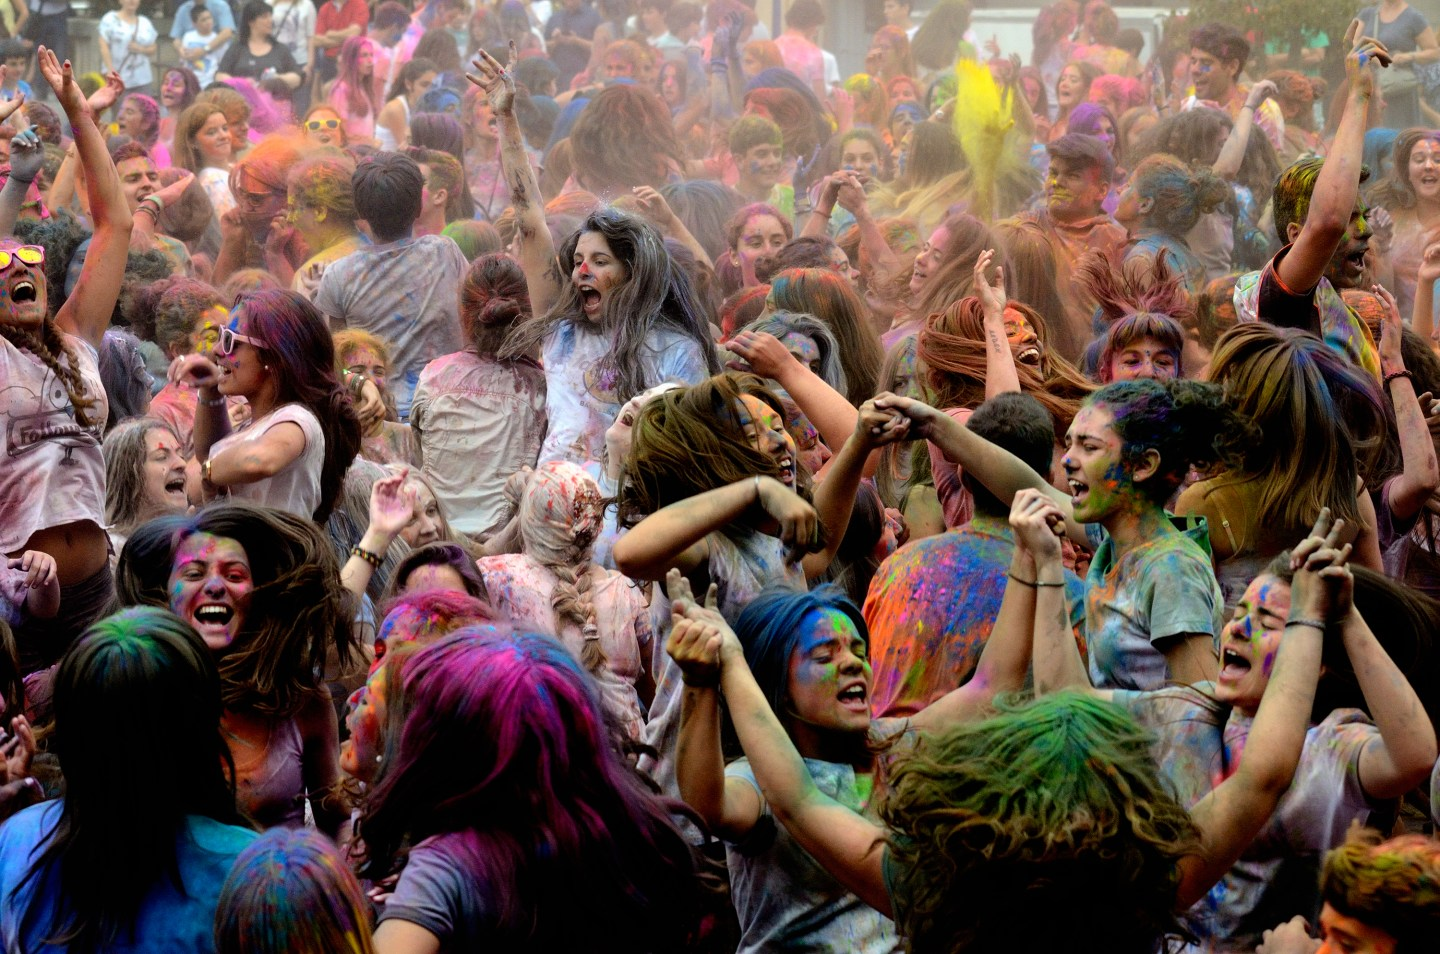 Representational image of crowd playing Holi covered in coloured powder.